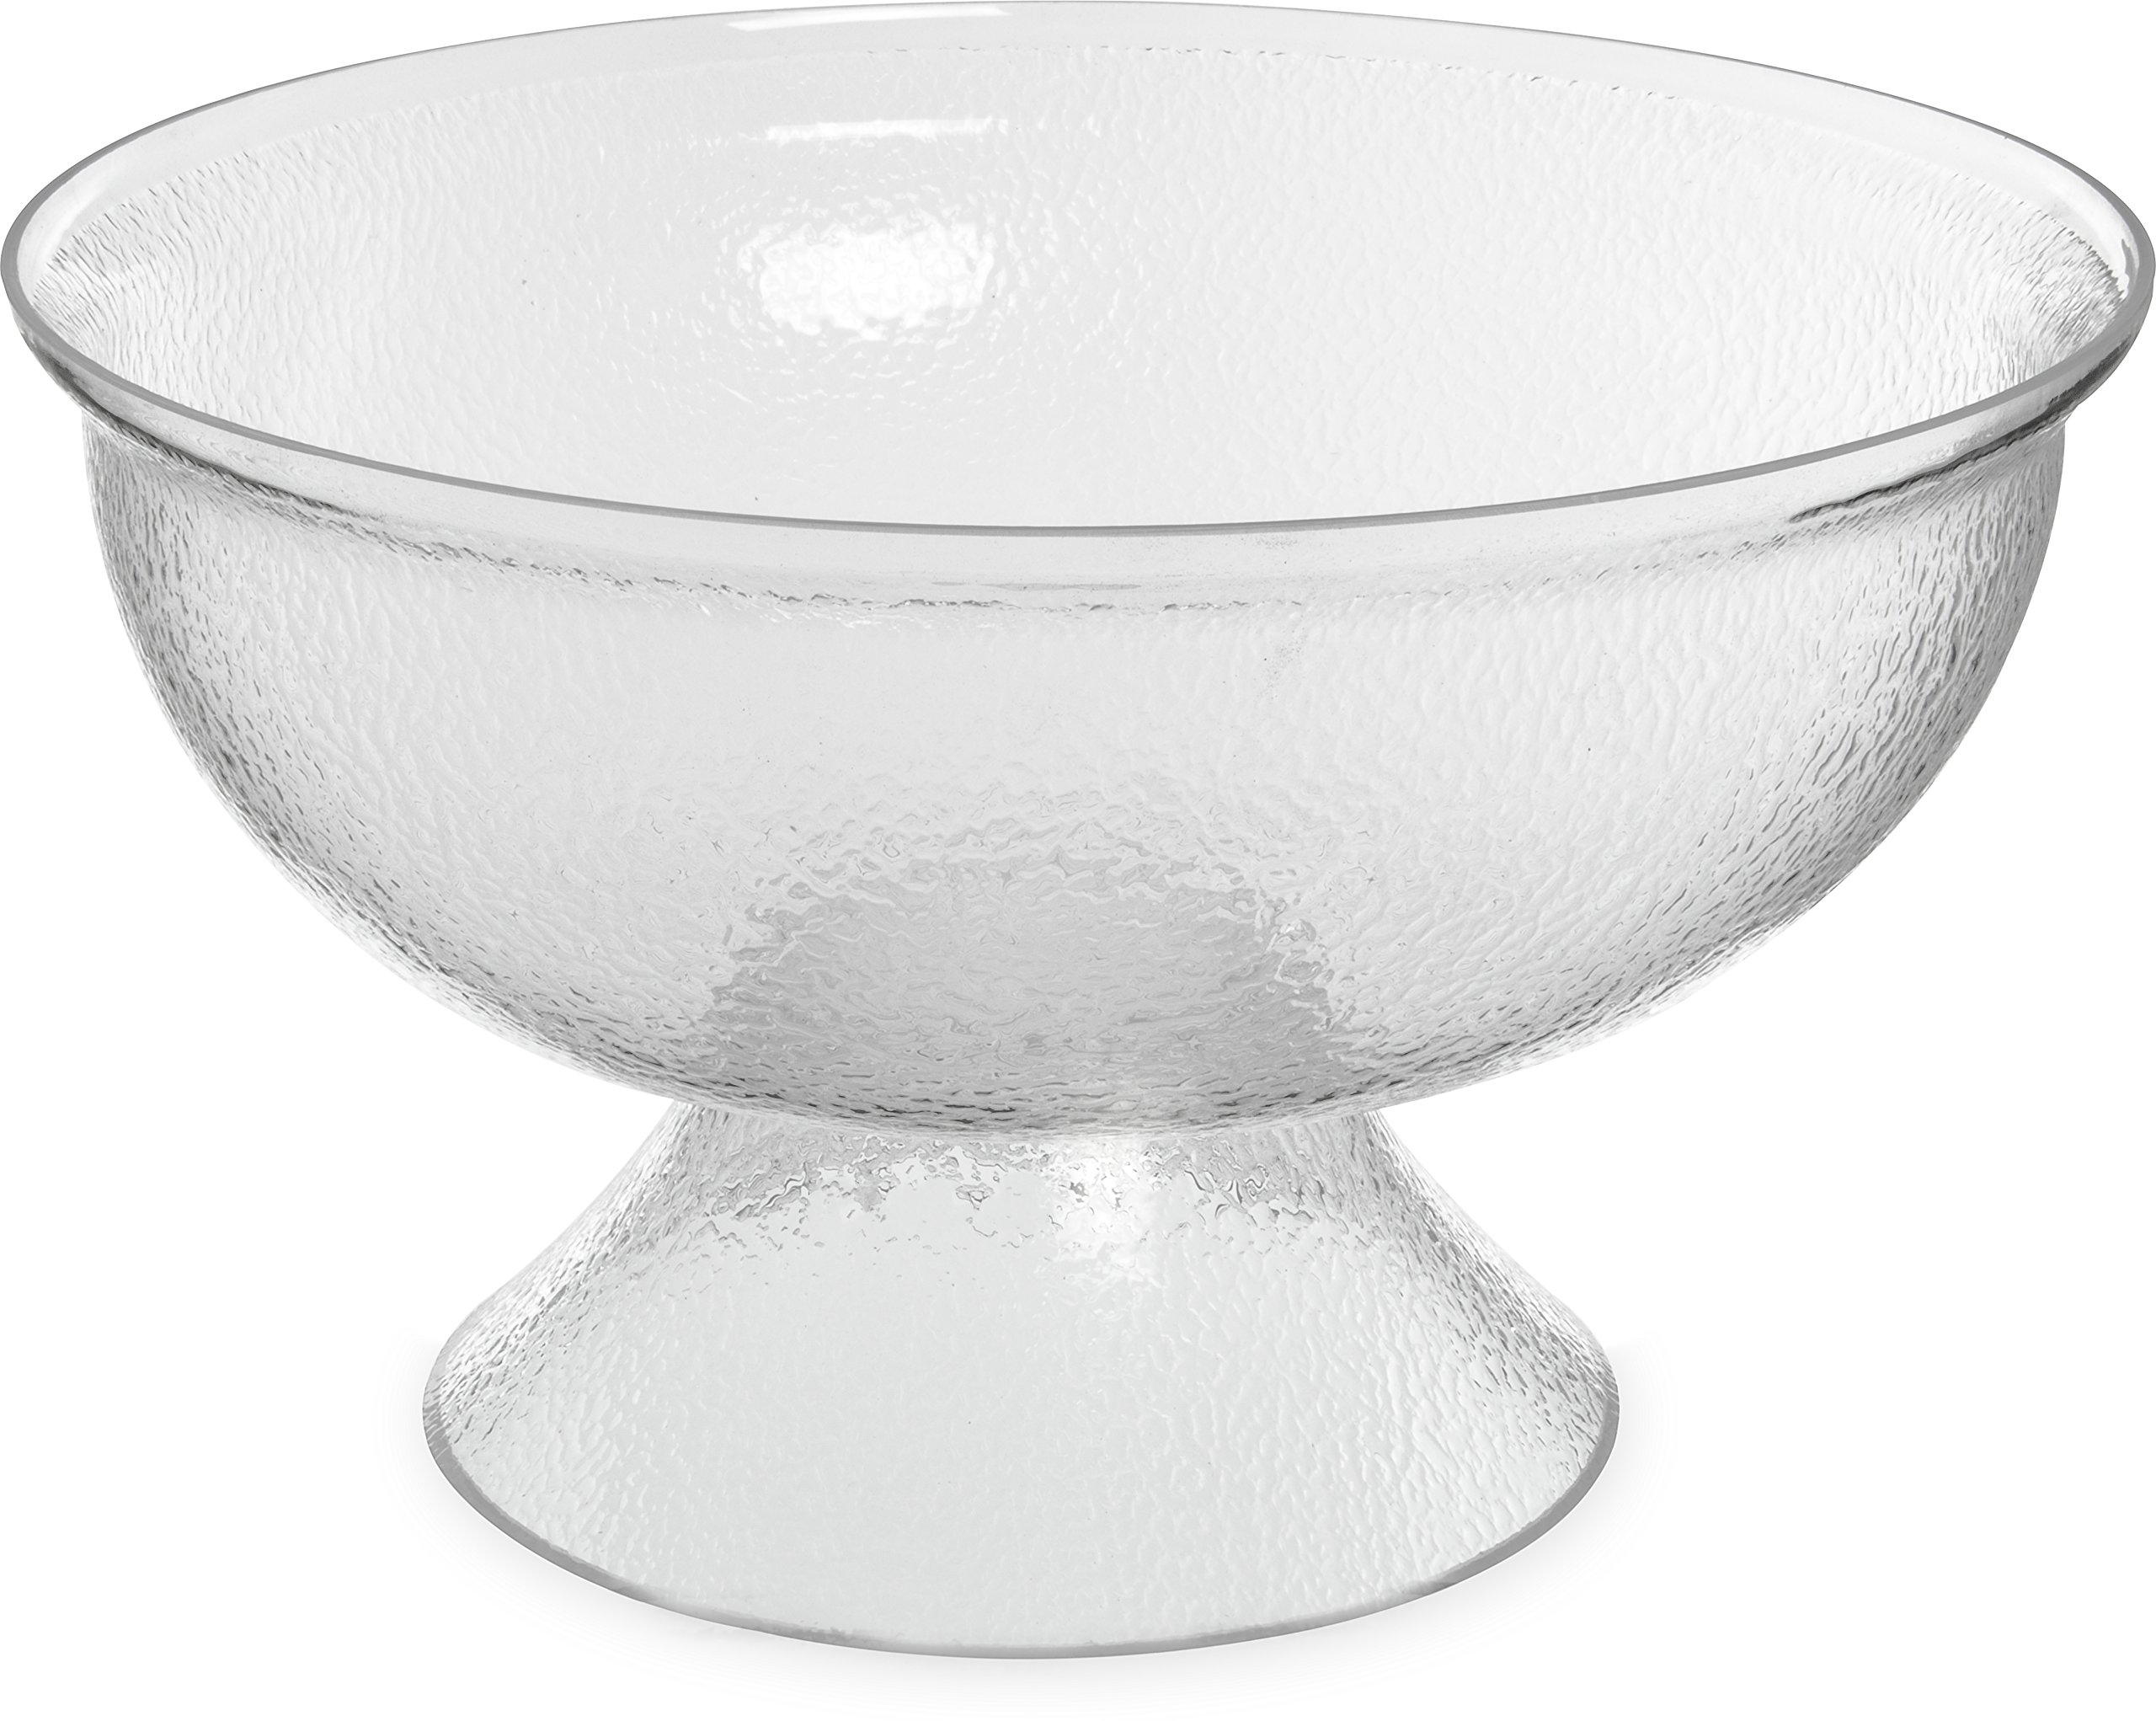 Carlisle SP1807 Acrylic Pebbled Punch Bowl, 16-qt. Capacity, 17.75'' Diameter x 10.63'' Overall Height x 6.5'' Depth, Clear